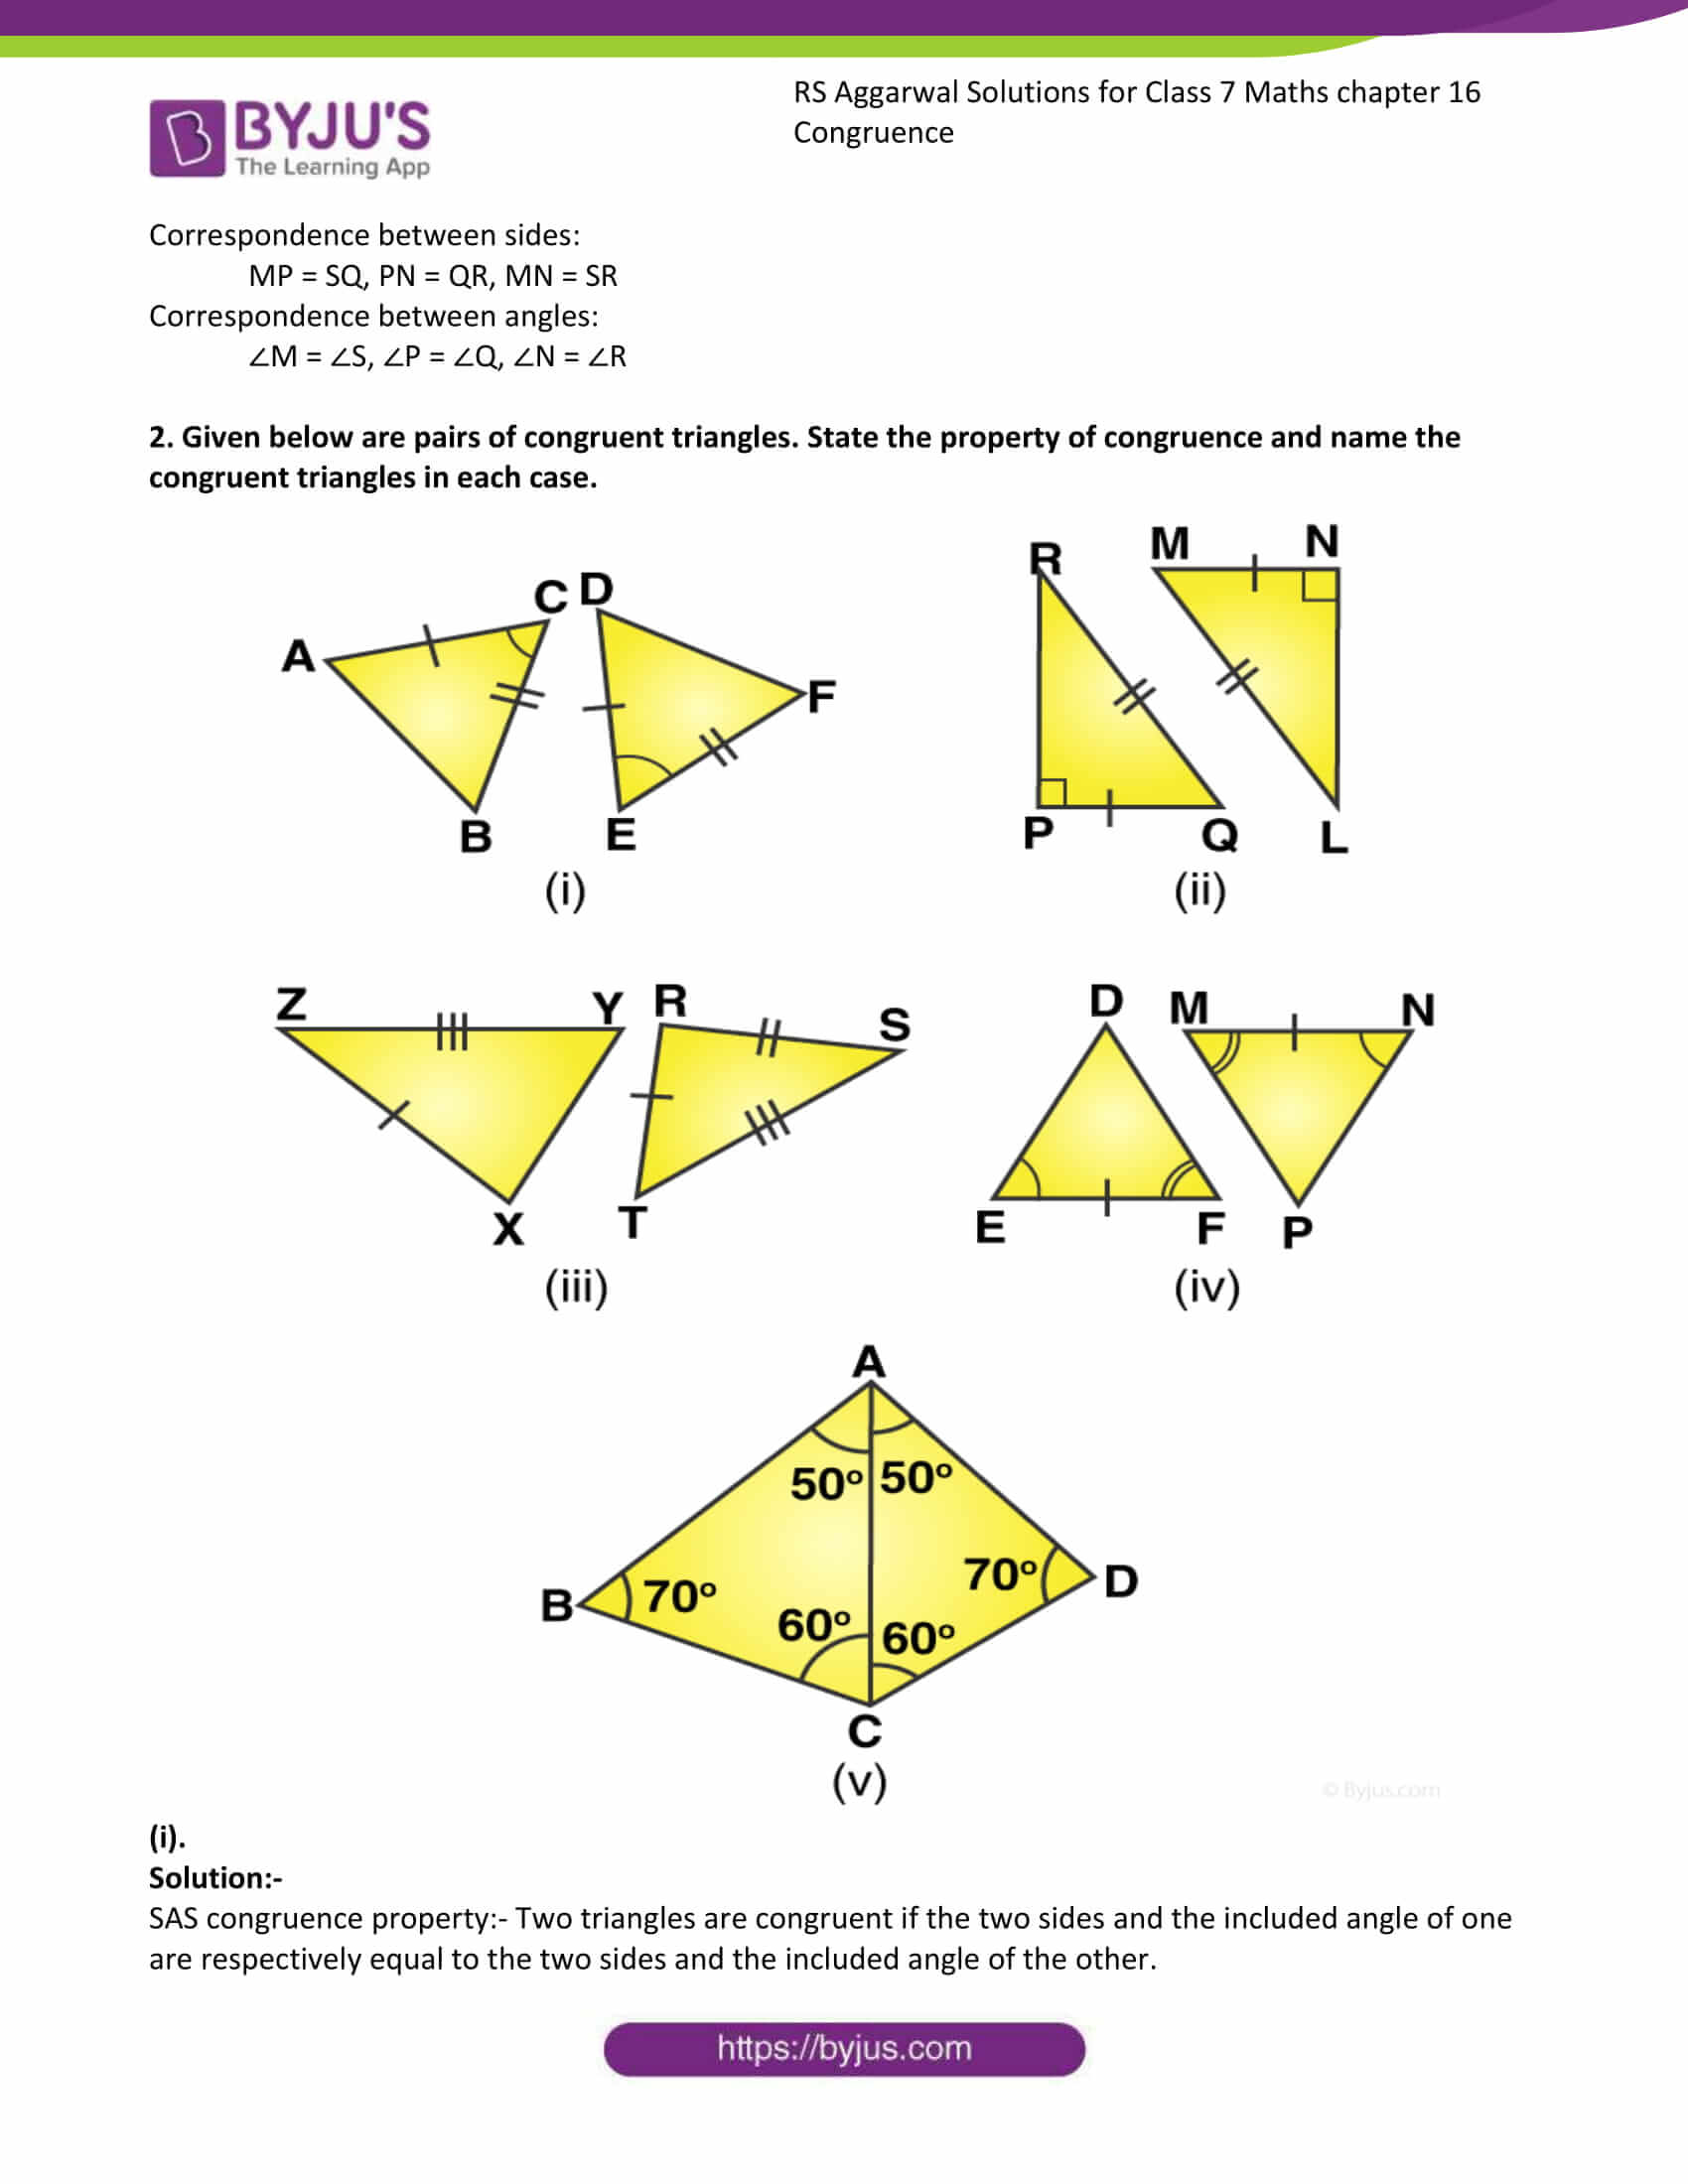 RS Aggarwal Solutions Class 7 Maths Chapter 16 Congruence 2